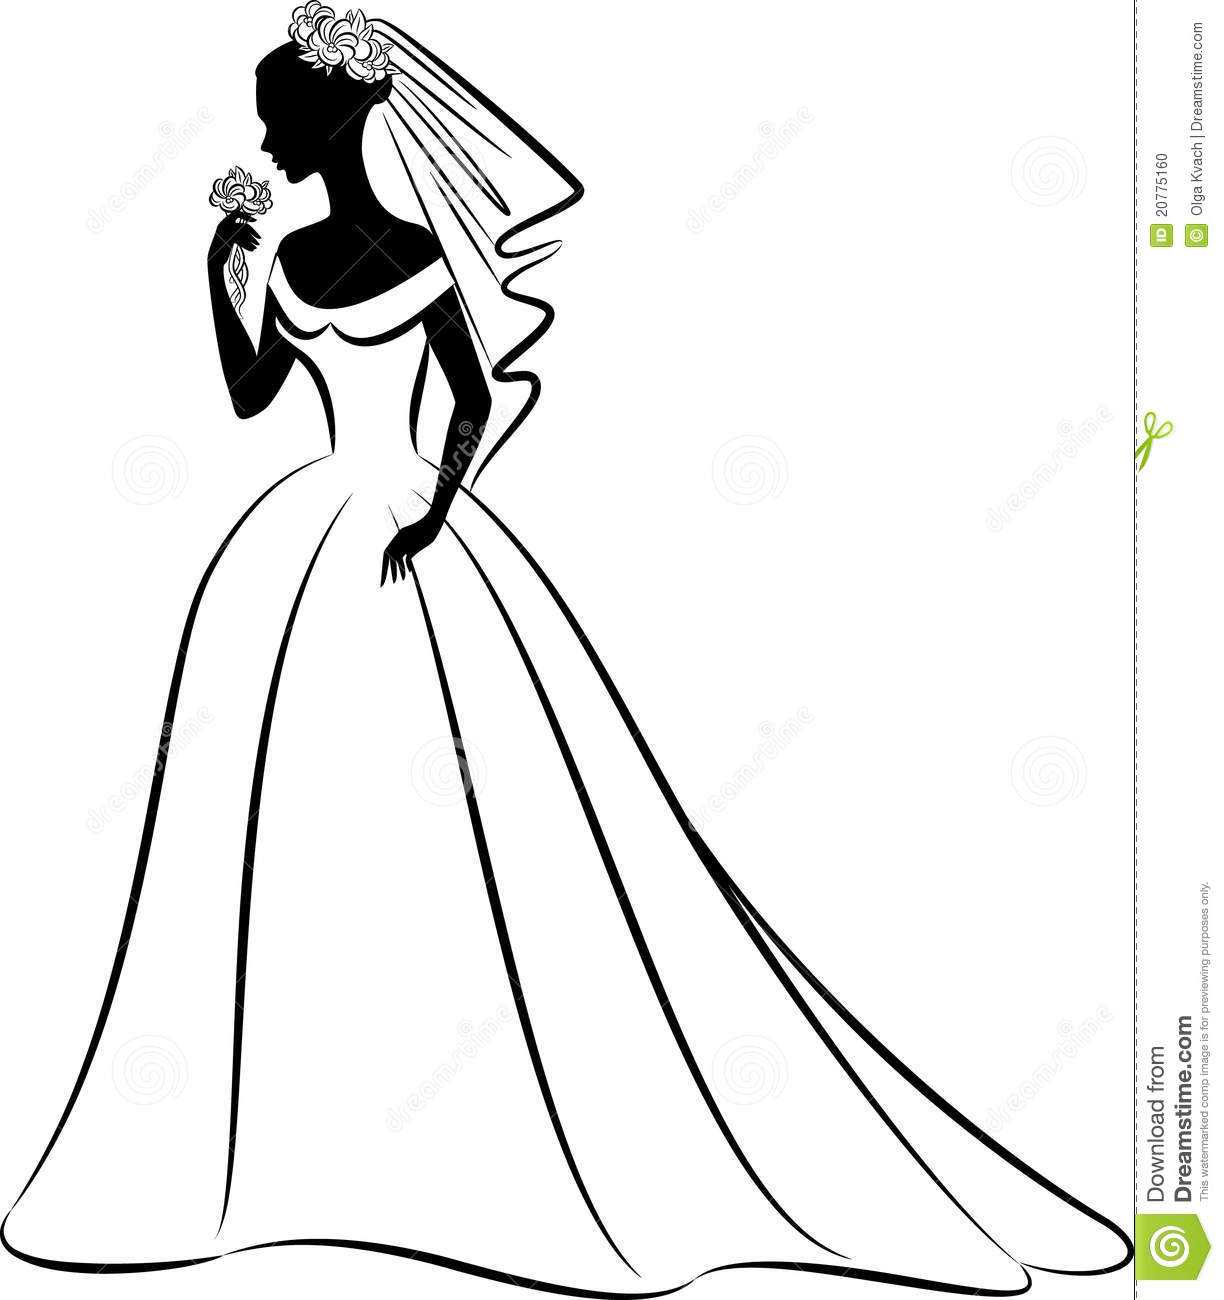 2006 Best Picture Best Director Best Actor Best Actress Best Supp Actor Best Supp Actress Cinematography Score Short in addition Kombi as well Ic Berlin Nufenen moreover Stratigraphic Column Correlation Ex les moreover Stock Photo Silhouette Beautiful Bride Dress Image20775160. on ford 3